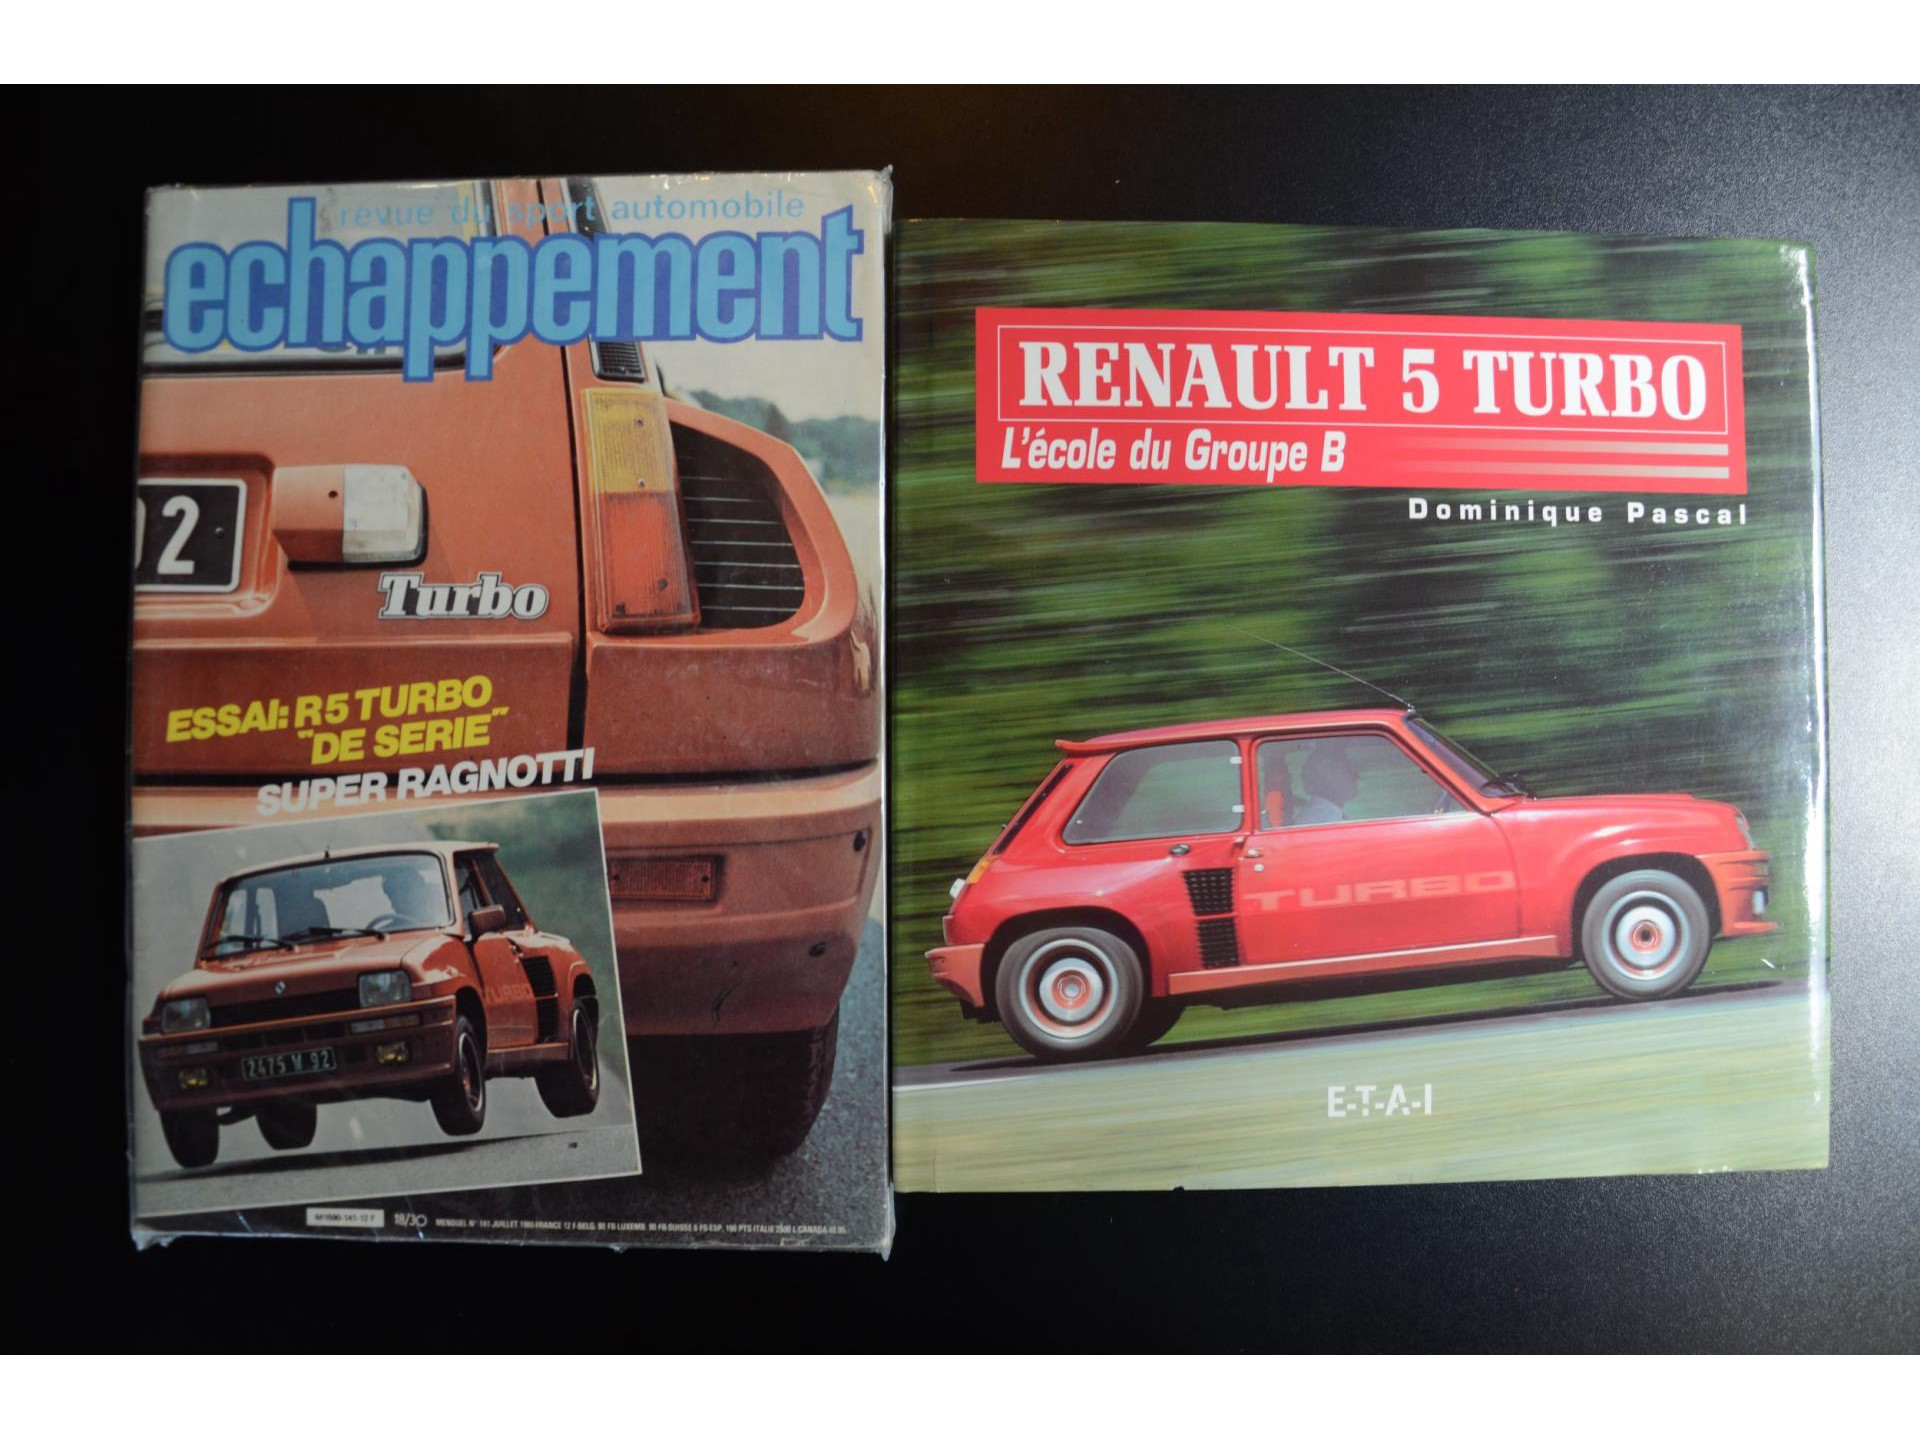 Renault-5-Turbo-Series-1-for-sale-83